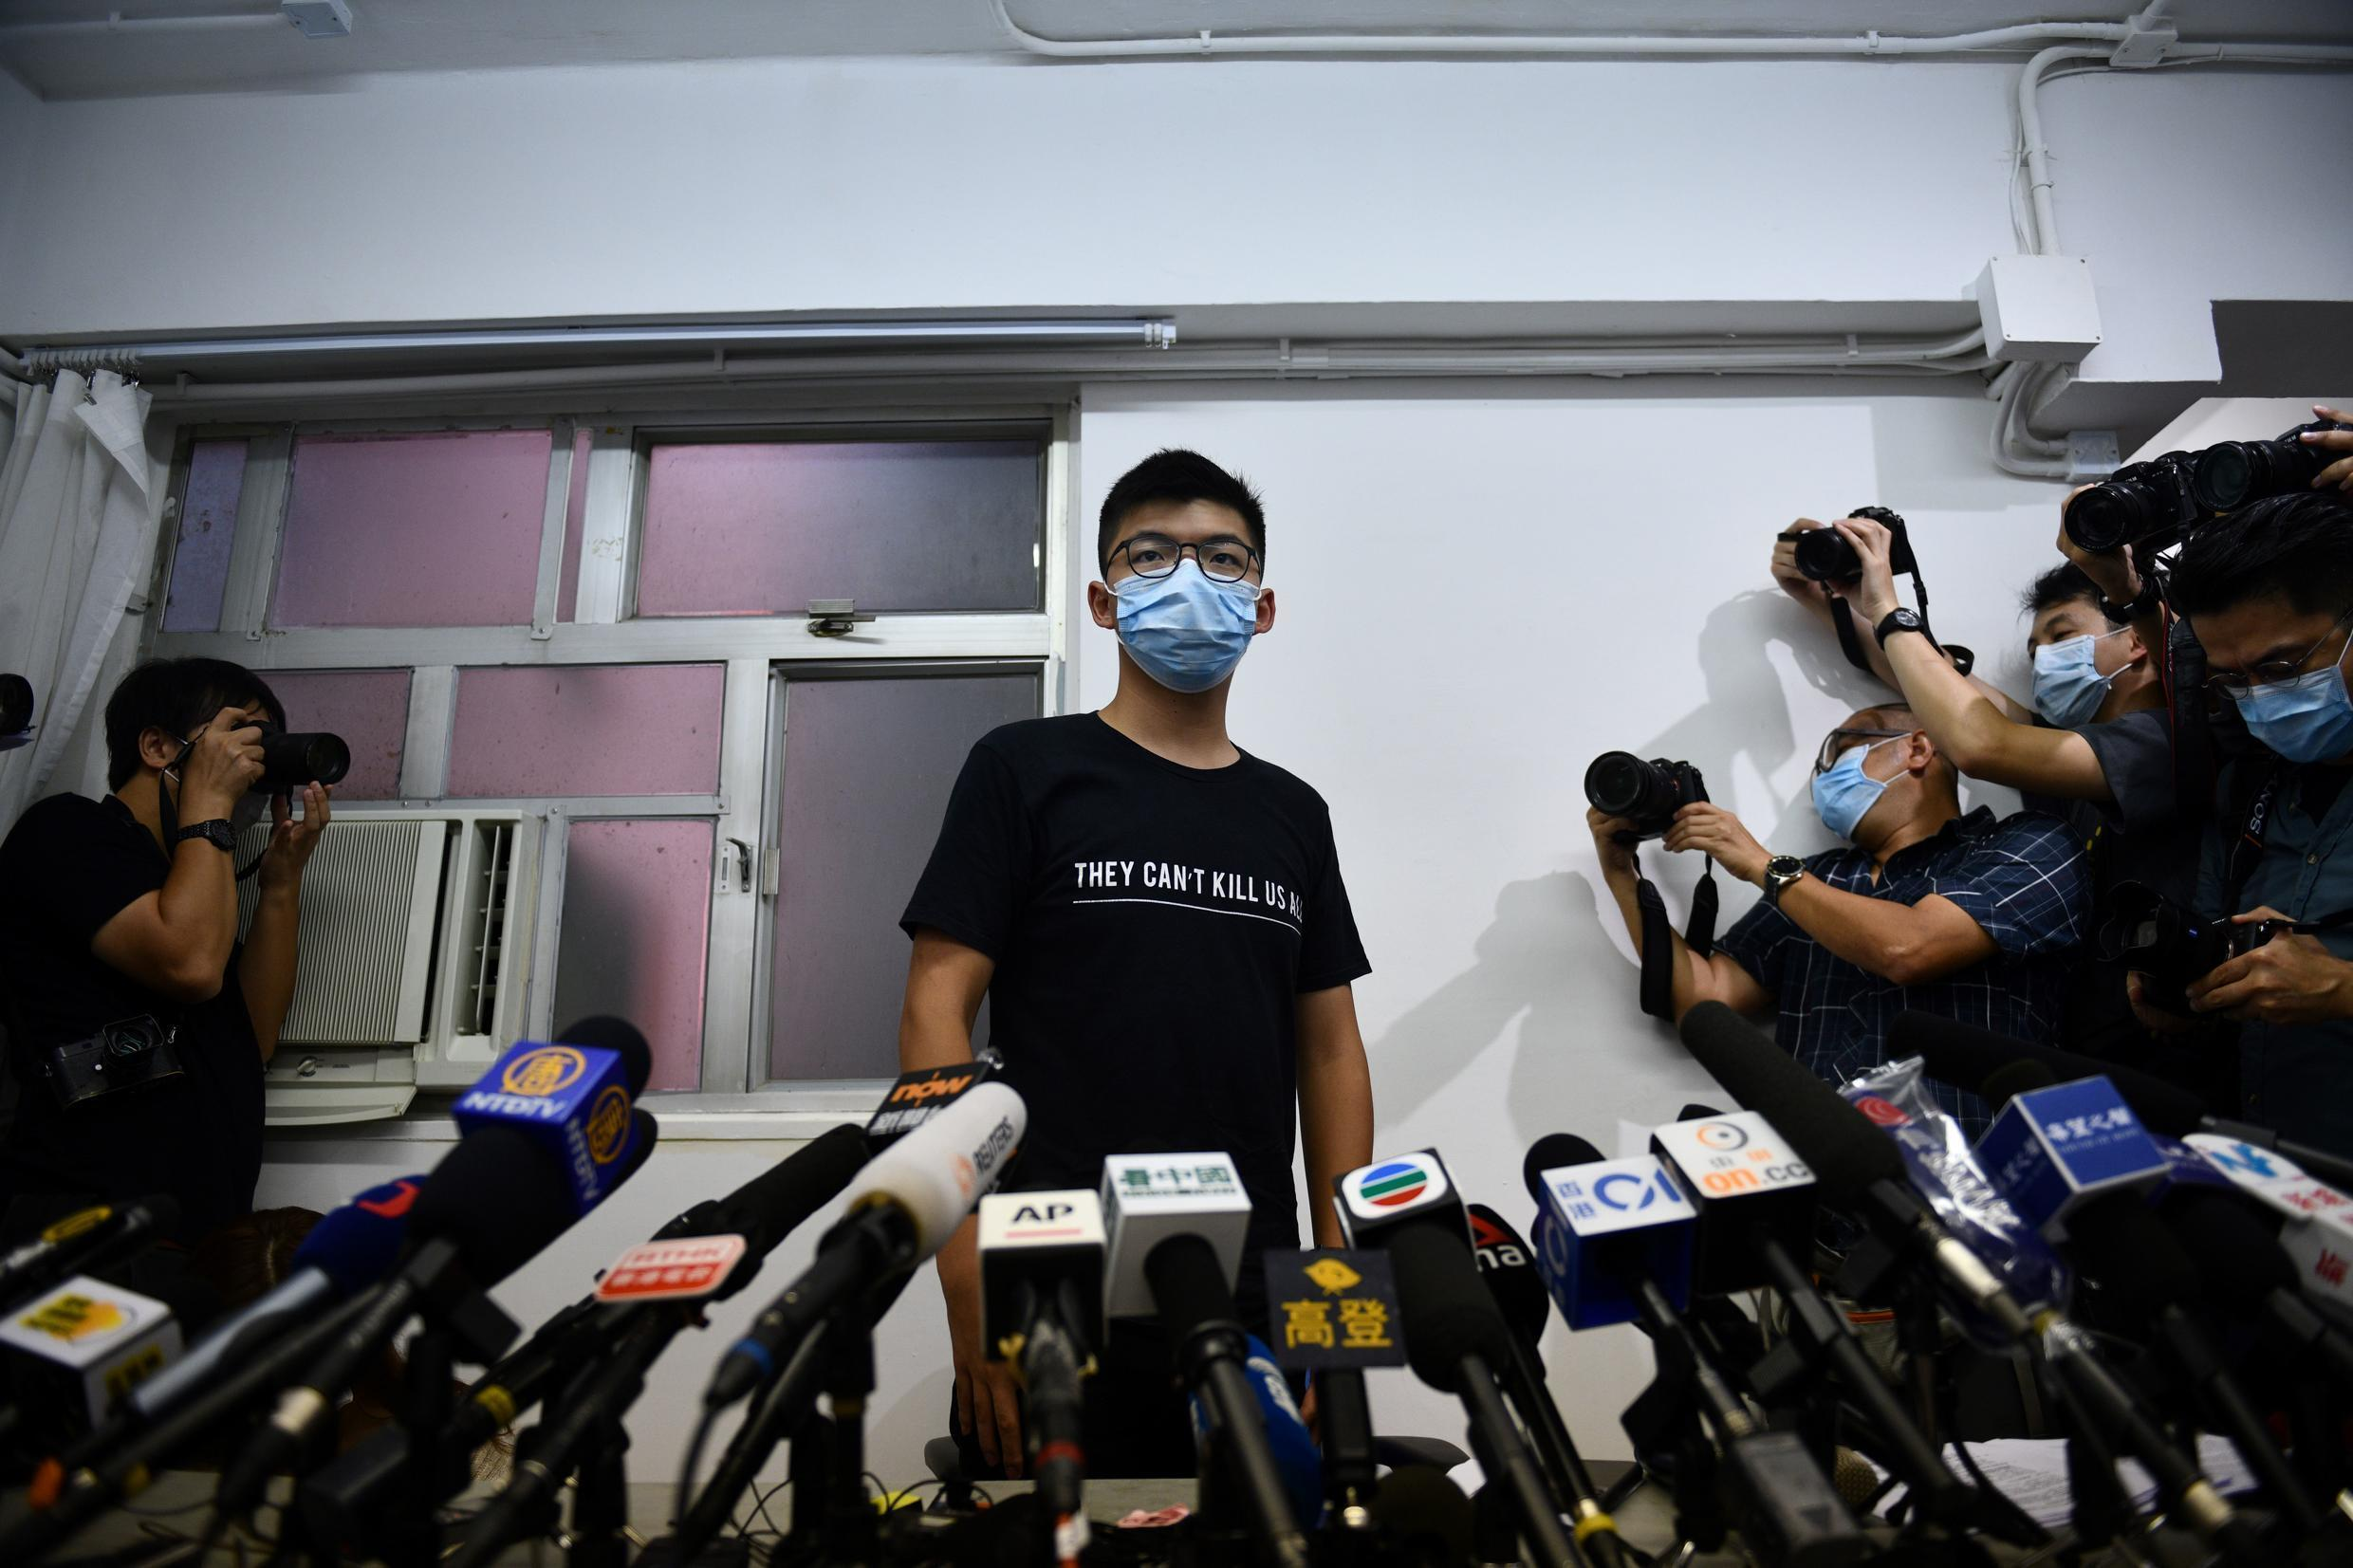 Hong Kong pro-democracy dissident Joshua Wong slammed authorities for disqualifying activists for candidature in September's legislative elections.